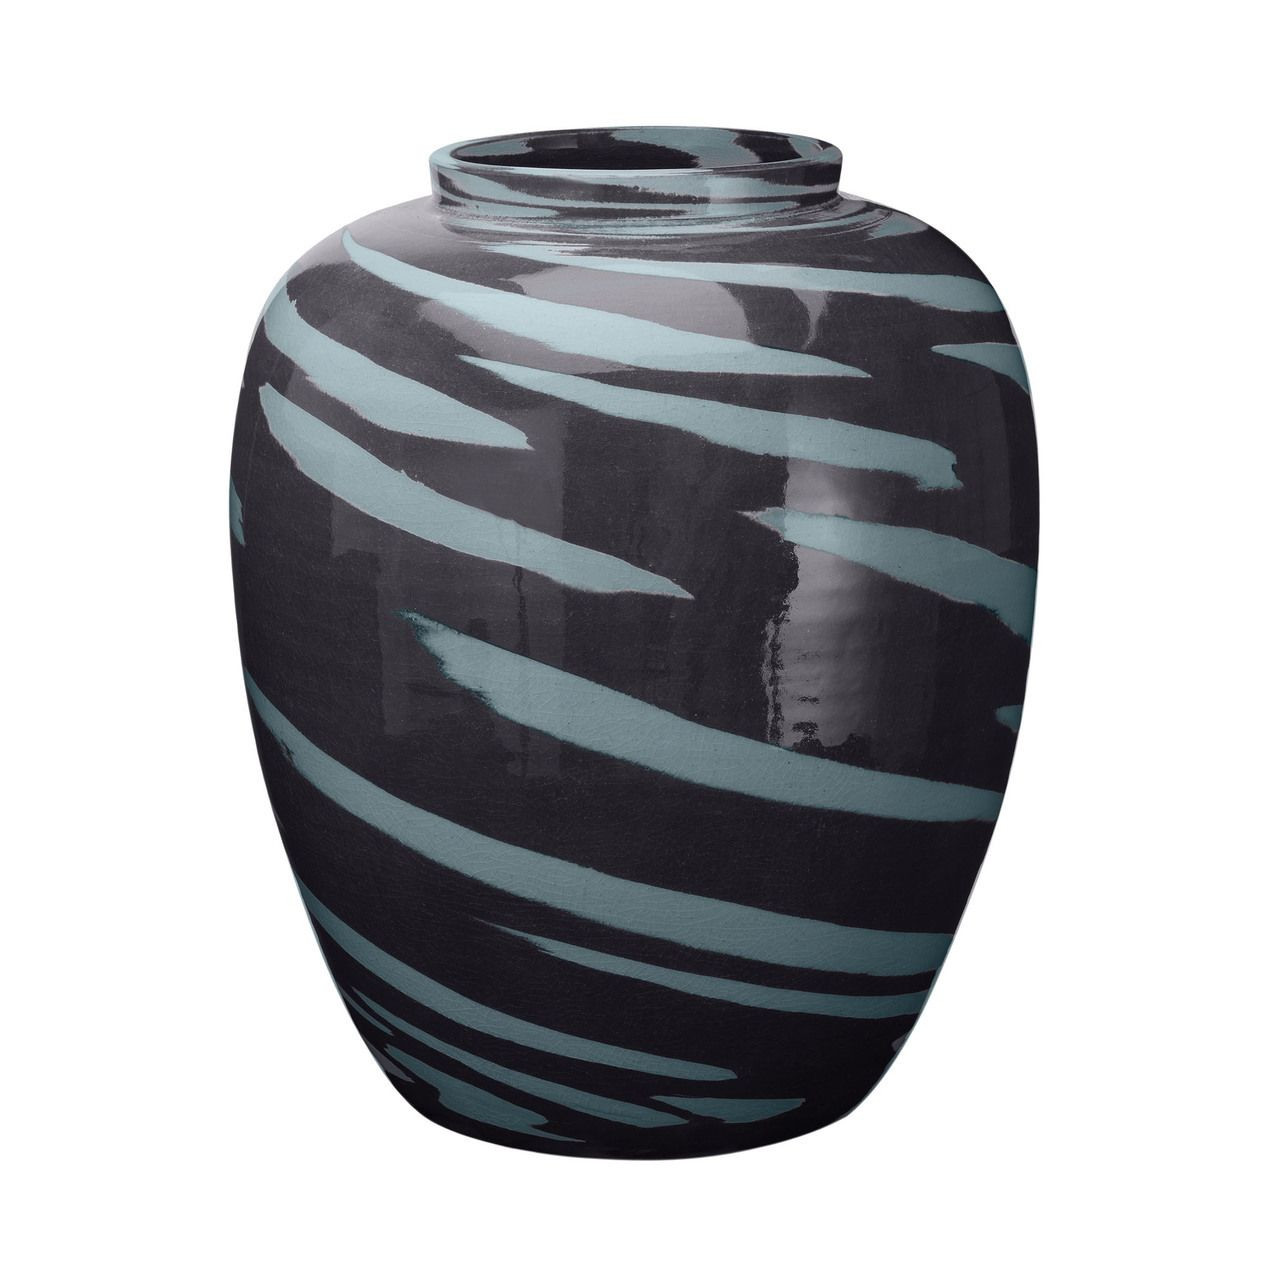 lenox holiday vase of diamond home clay sea tiger decorative churn tigers within the sea tiger churn is a unique vase having a tiger pattern promoting a natures love